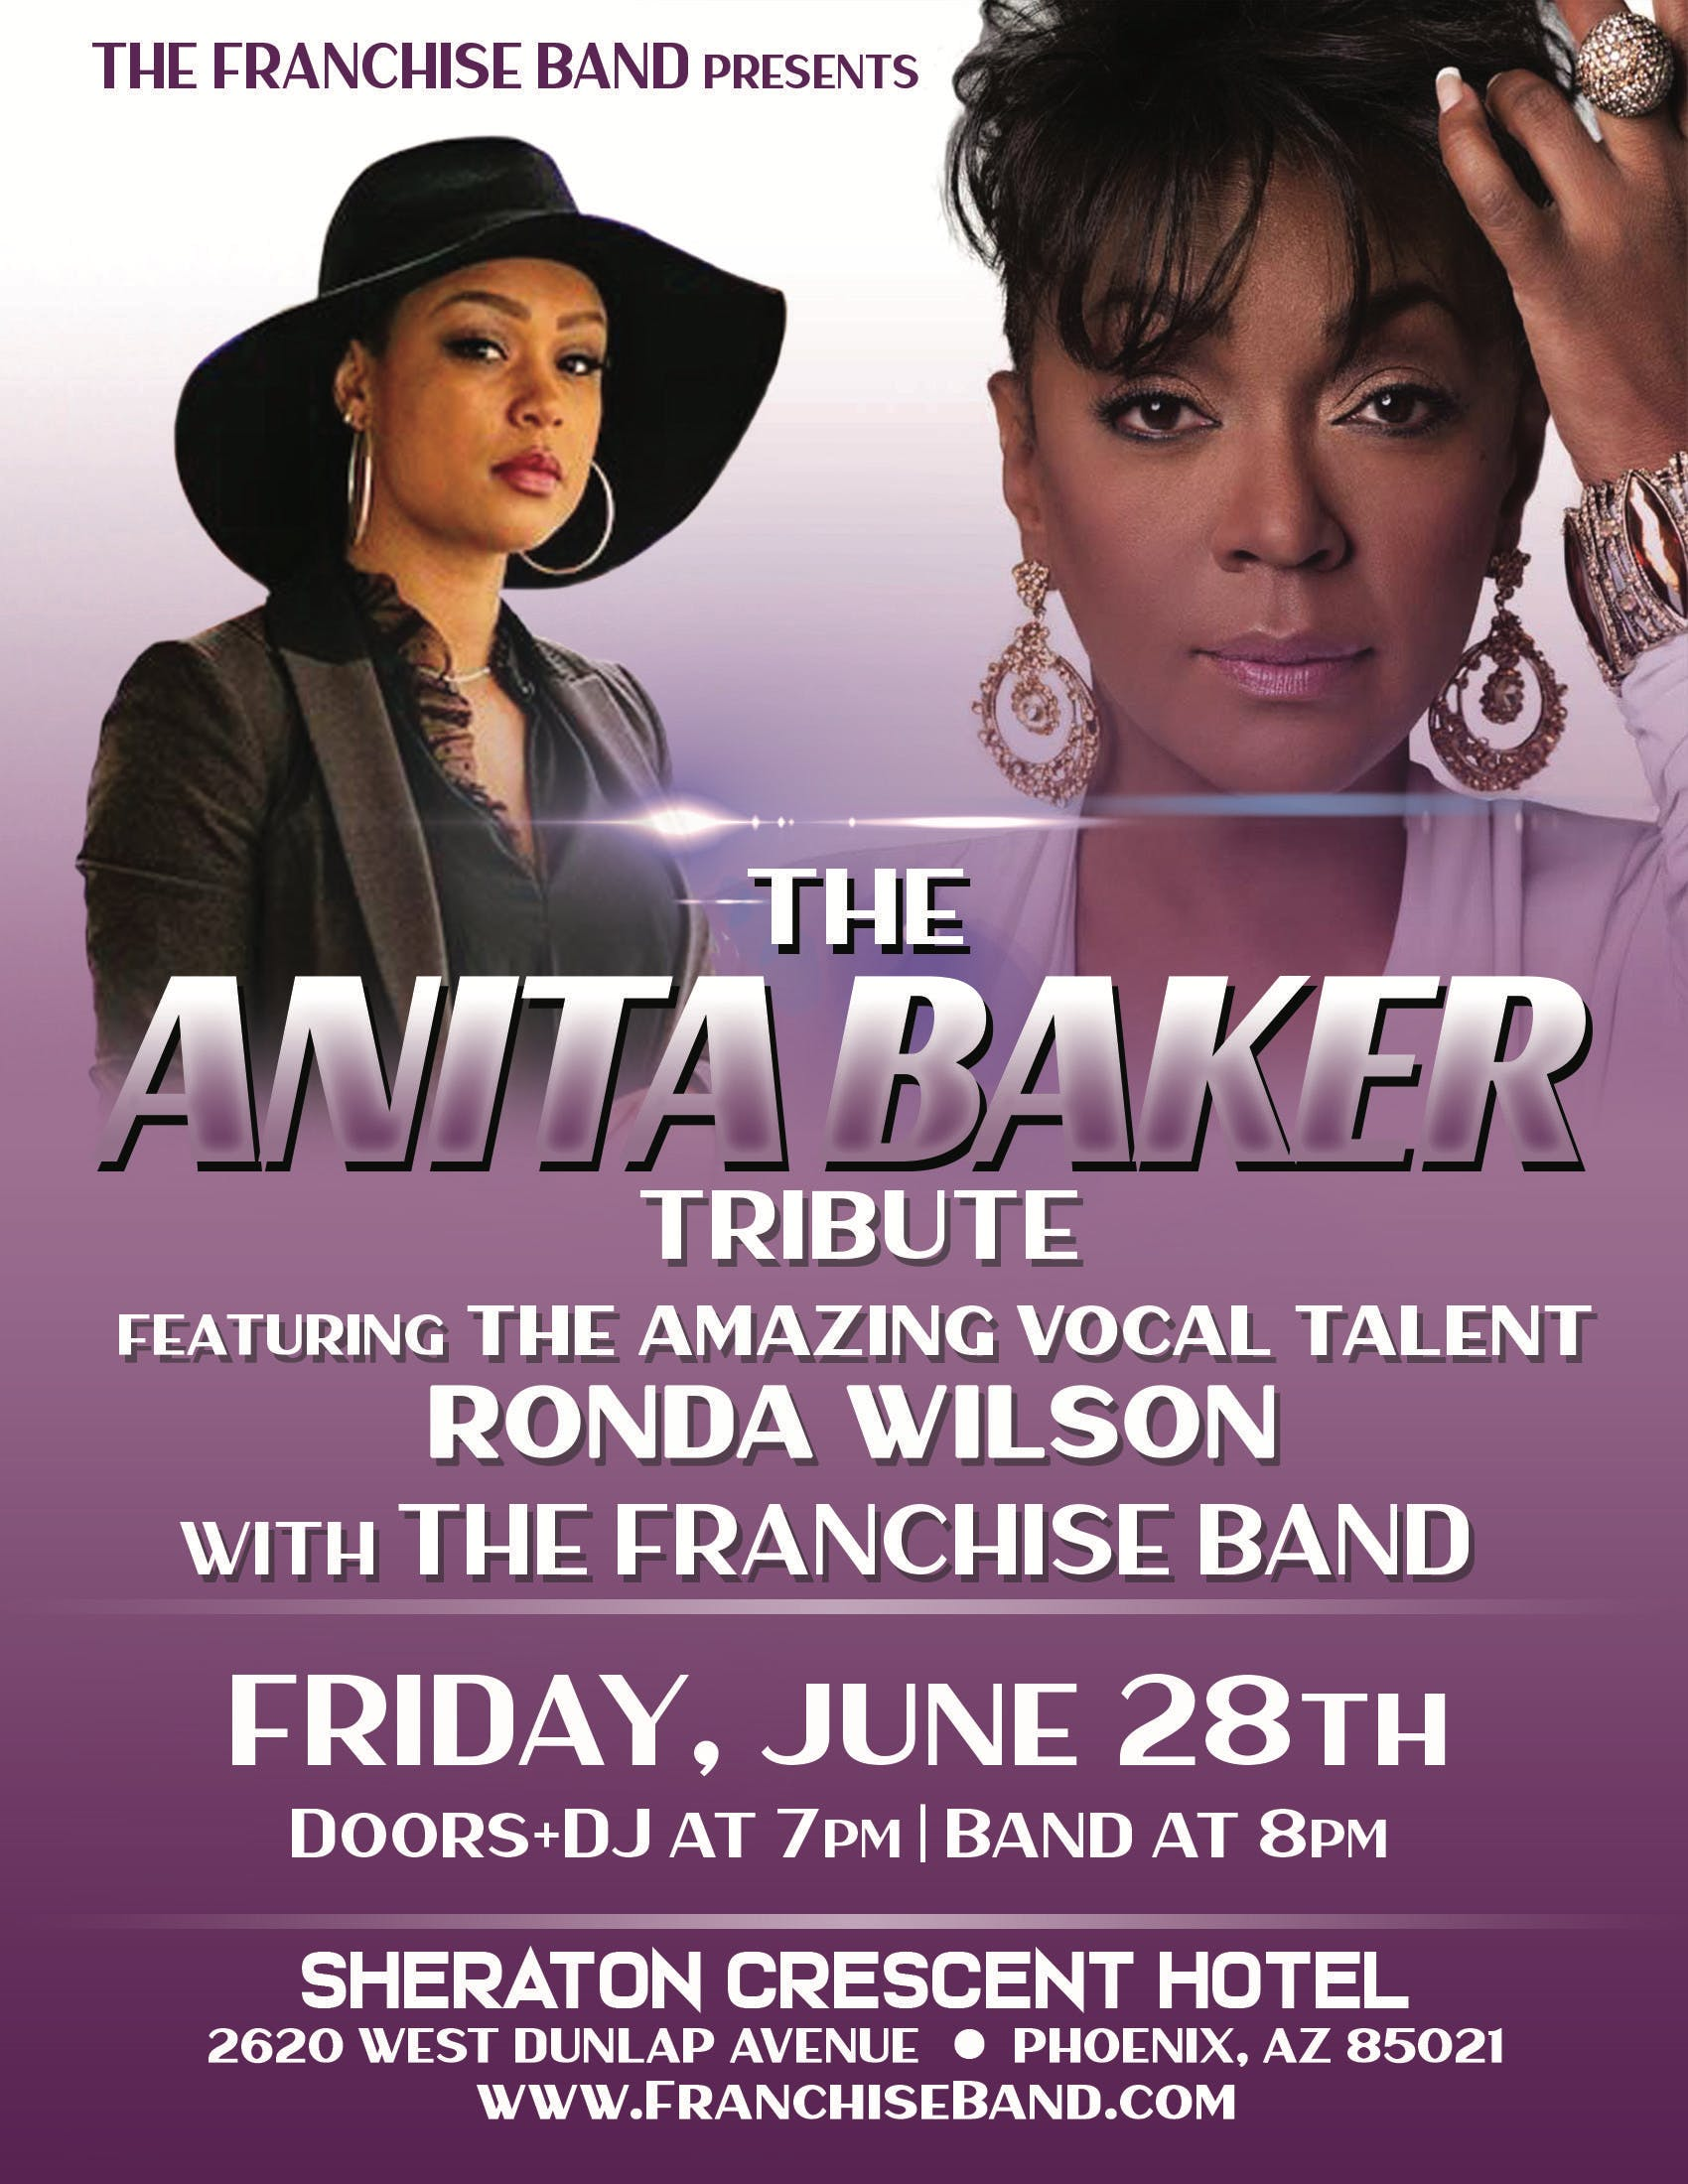 The Franchise Band Presents The Anita Baker Tribute Feat. Ronda Wilson!